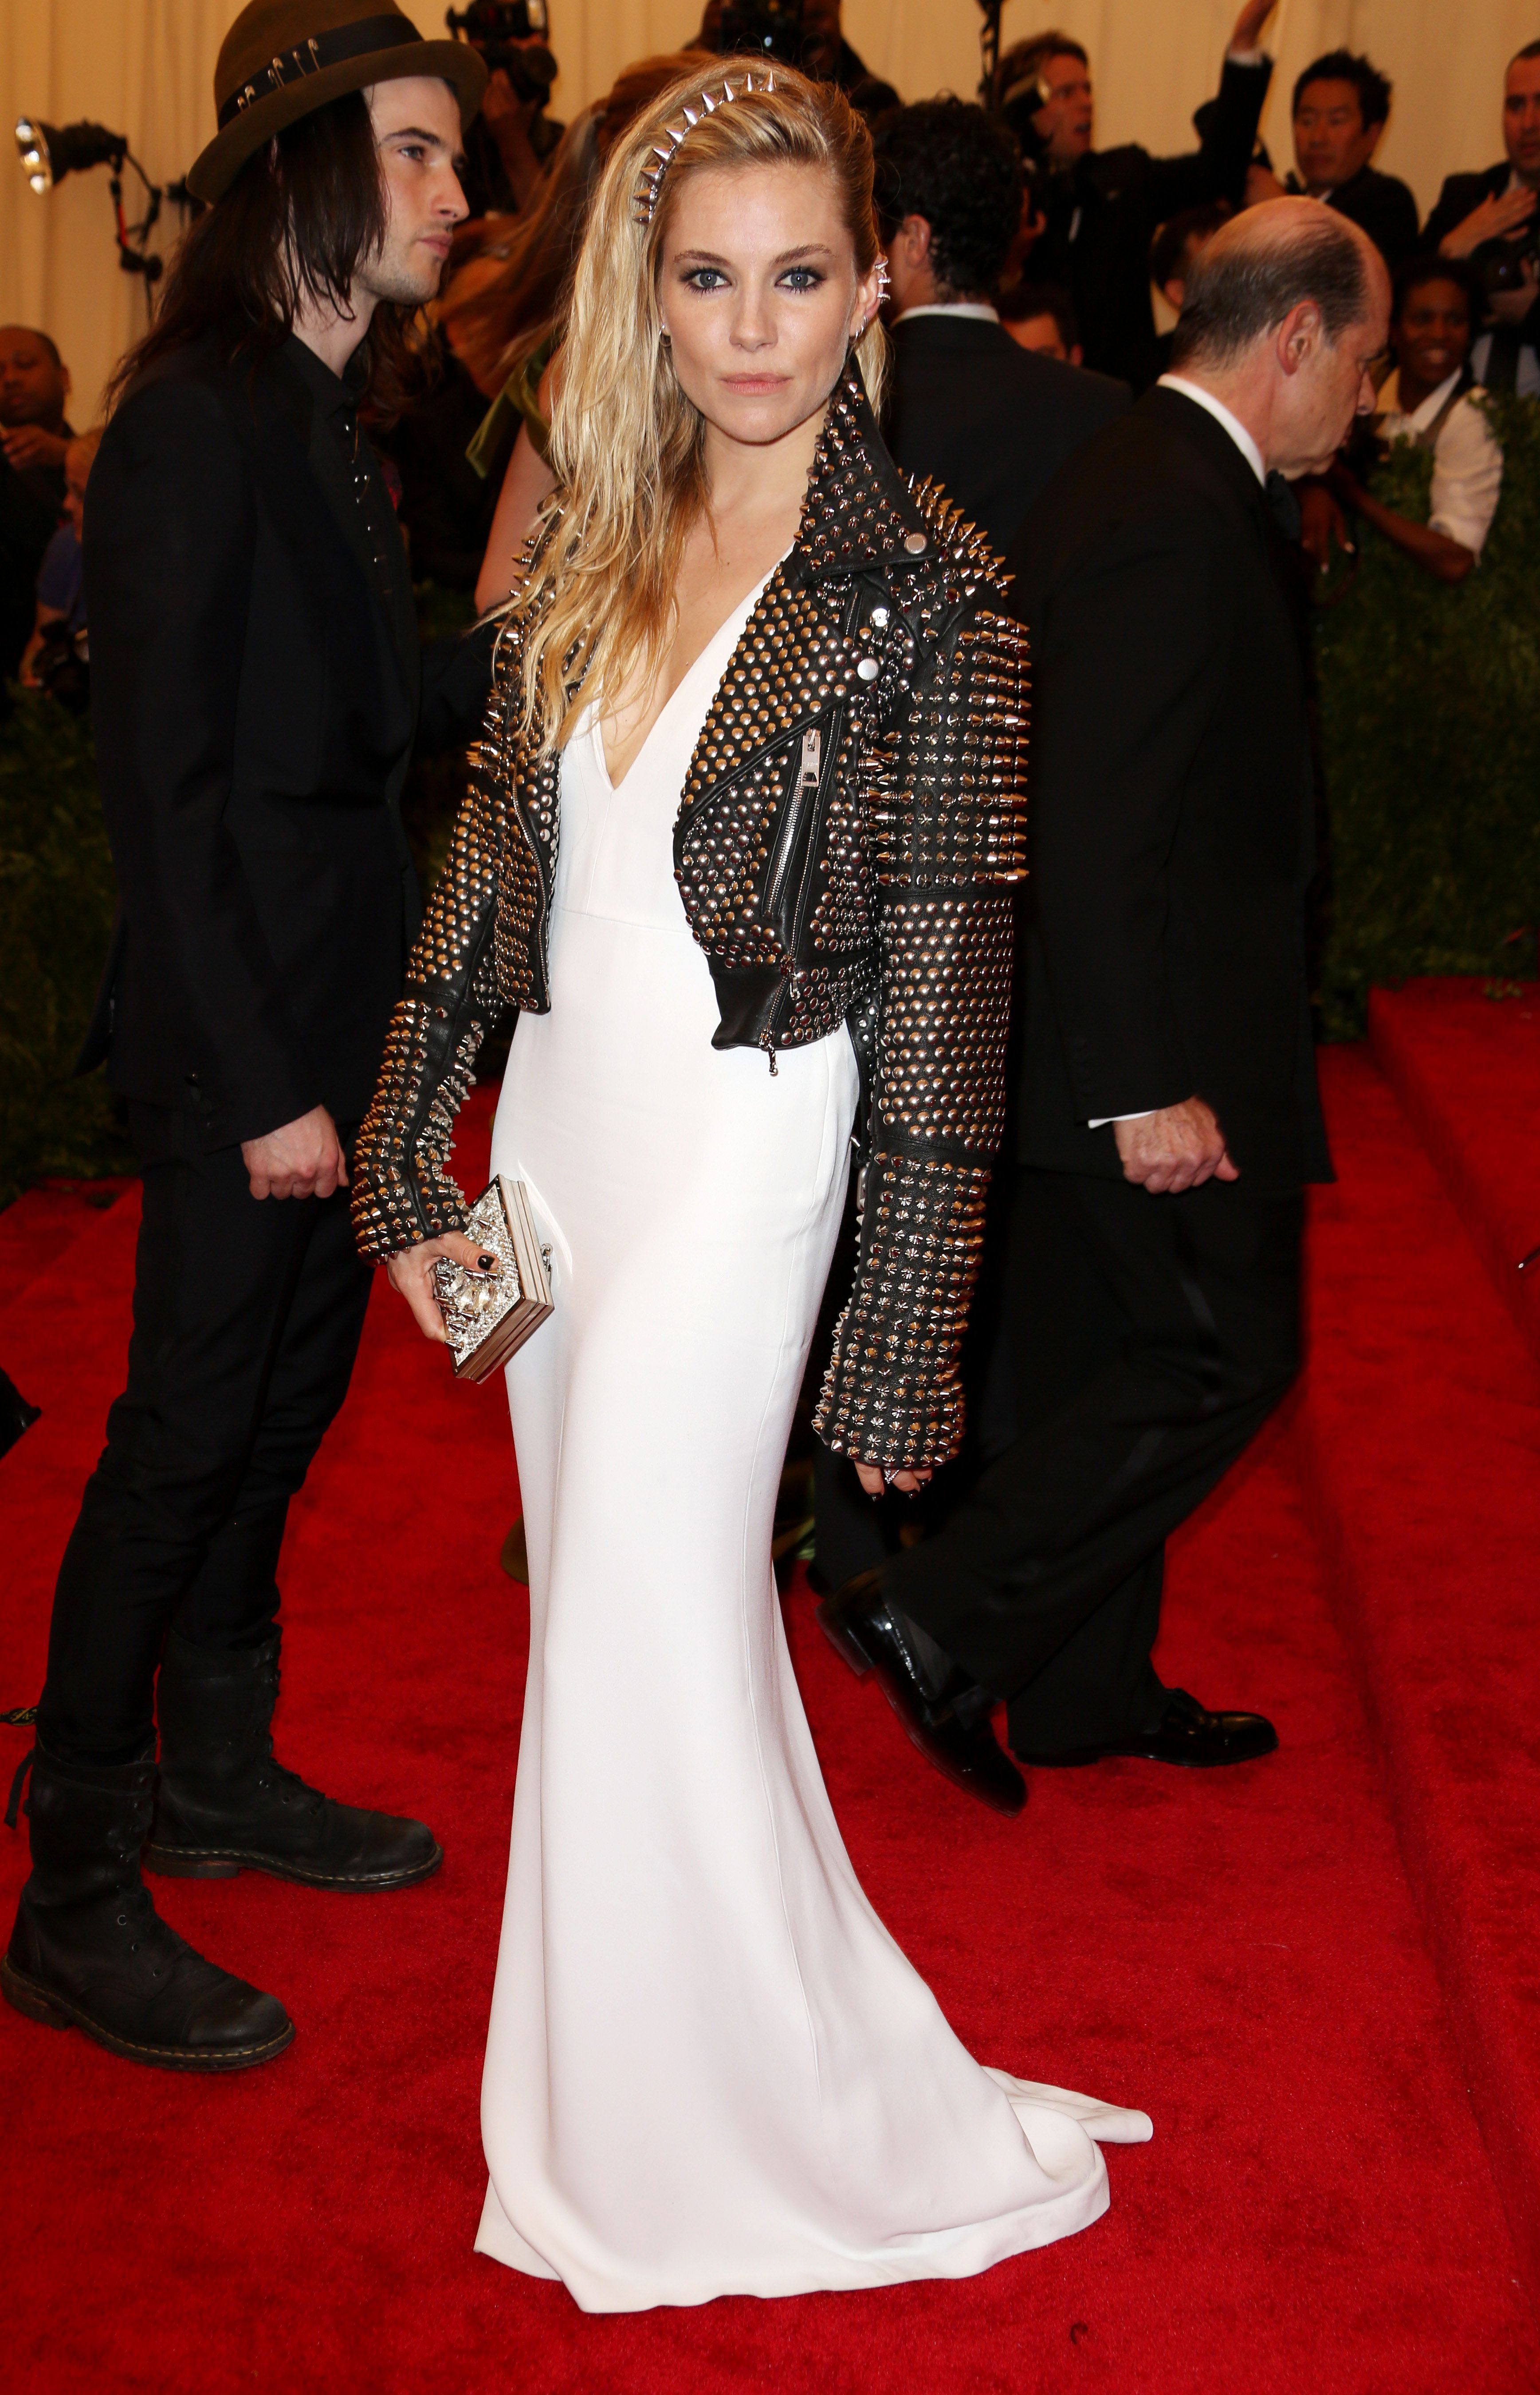 British actress Sienna Miller wearing a Burberry dress and studded leather jacket to attend the Met Gala in New York